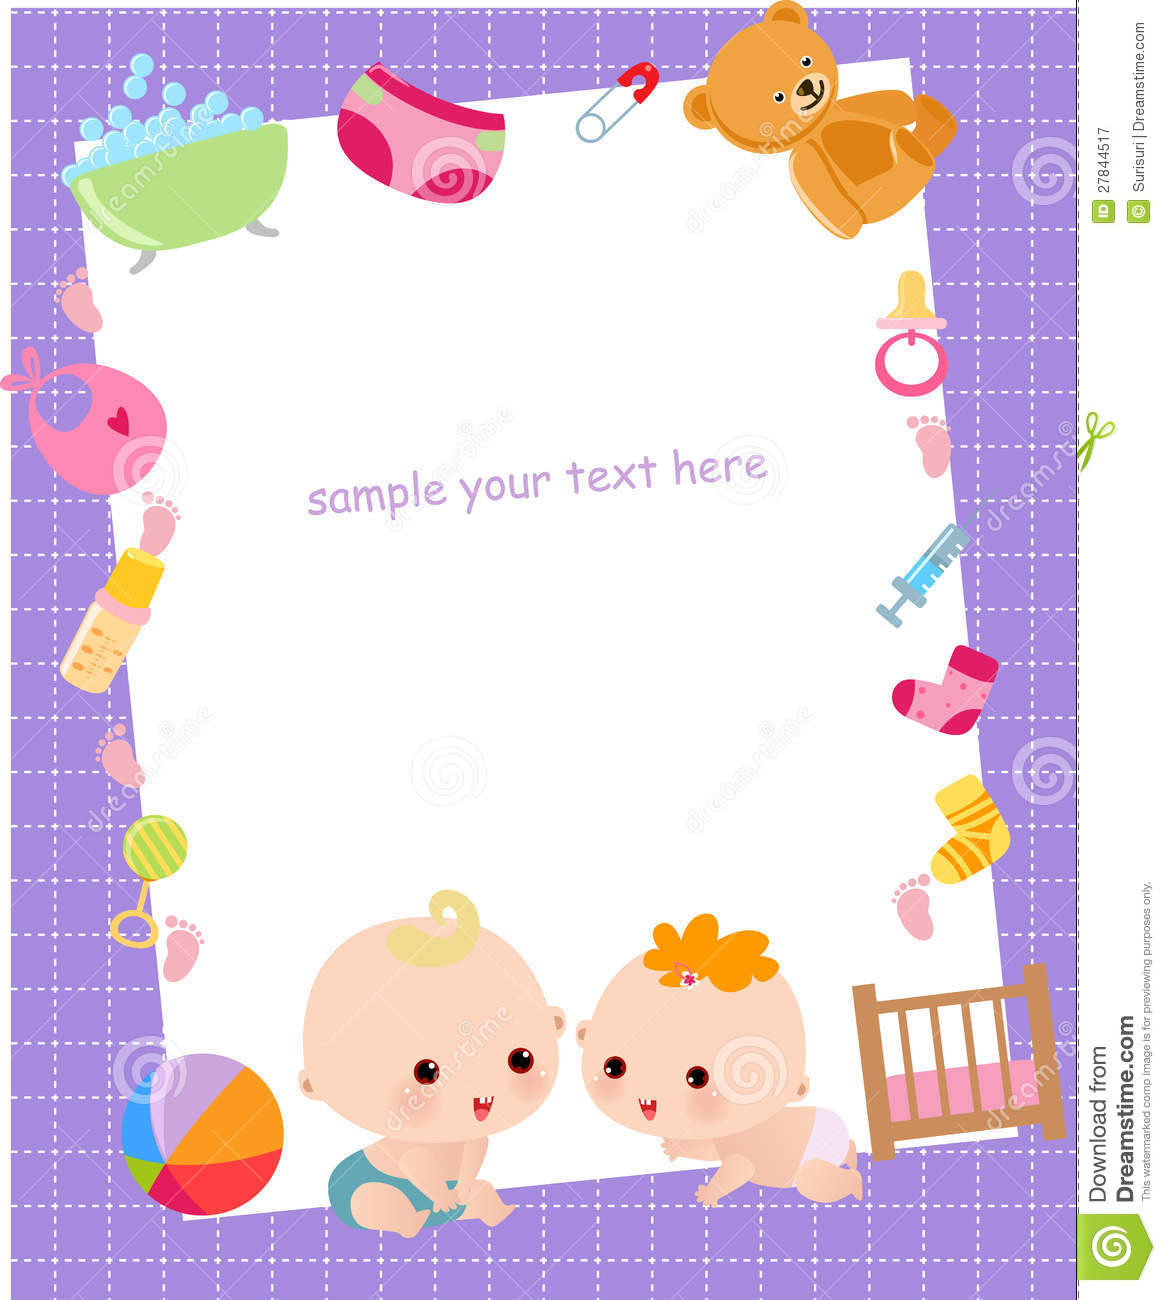 Baby Frame Clipart.